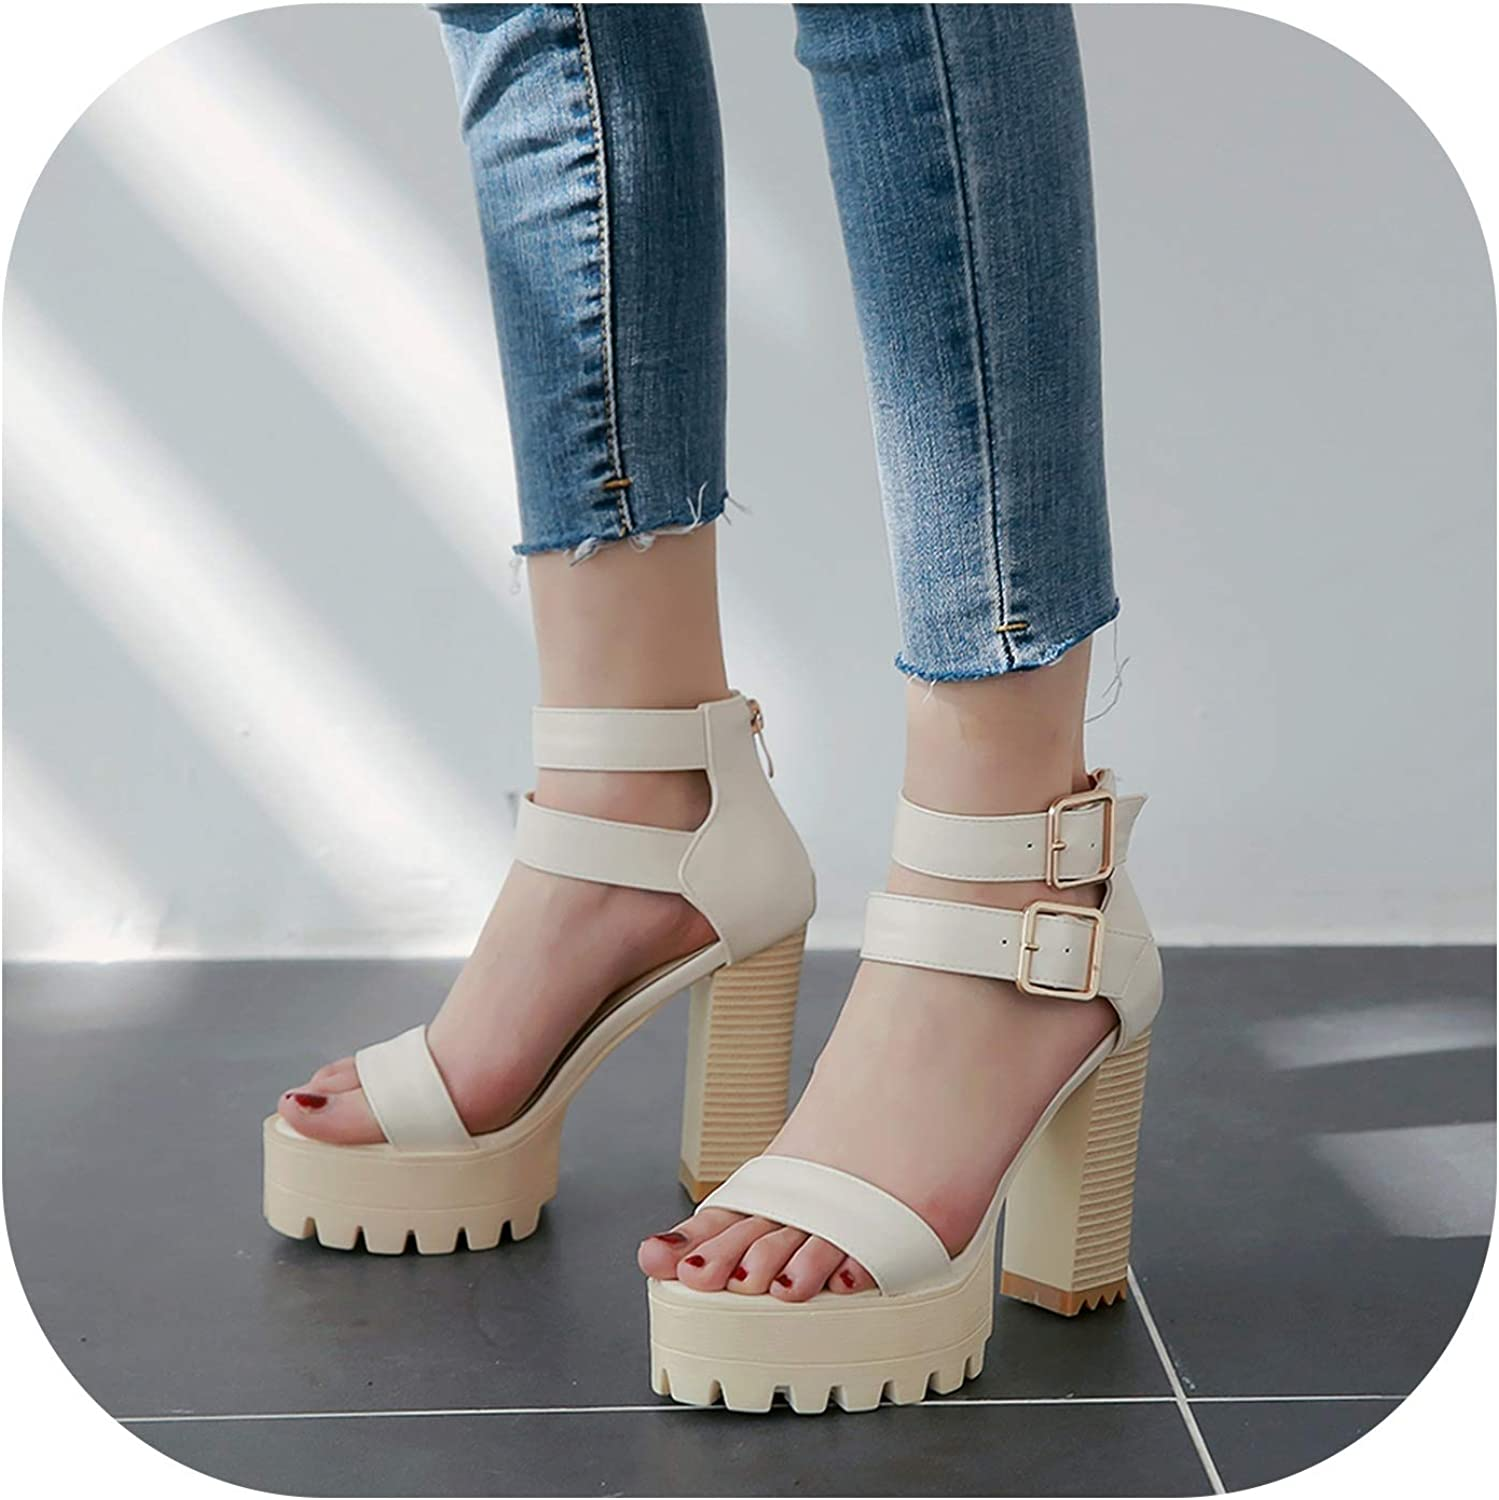 Summer Sandals for Women Double Buckle Thick high Heels Platform shoes